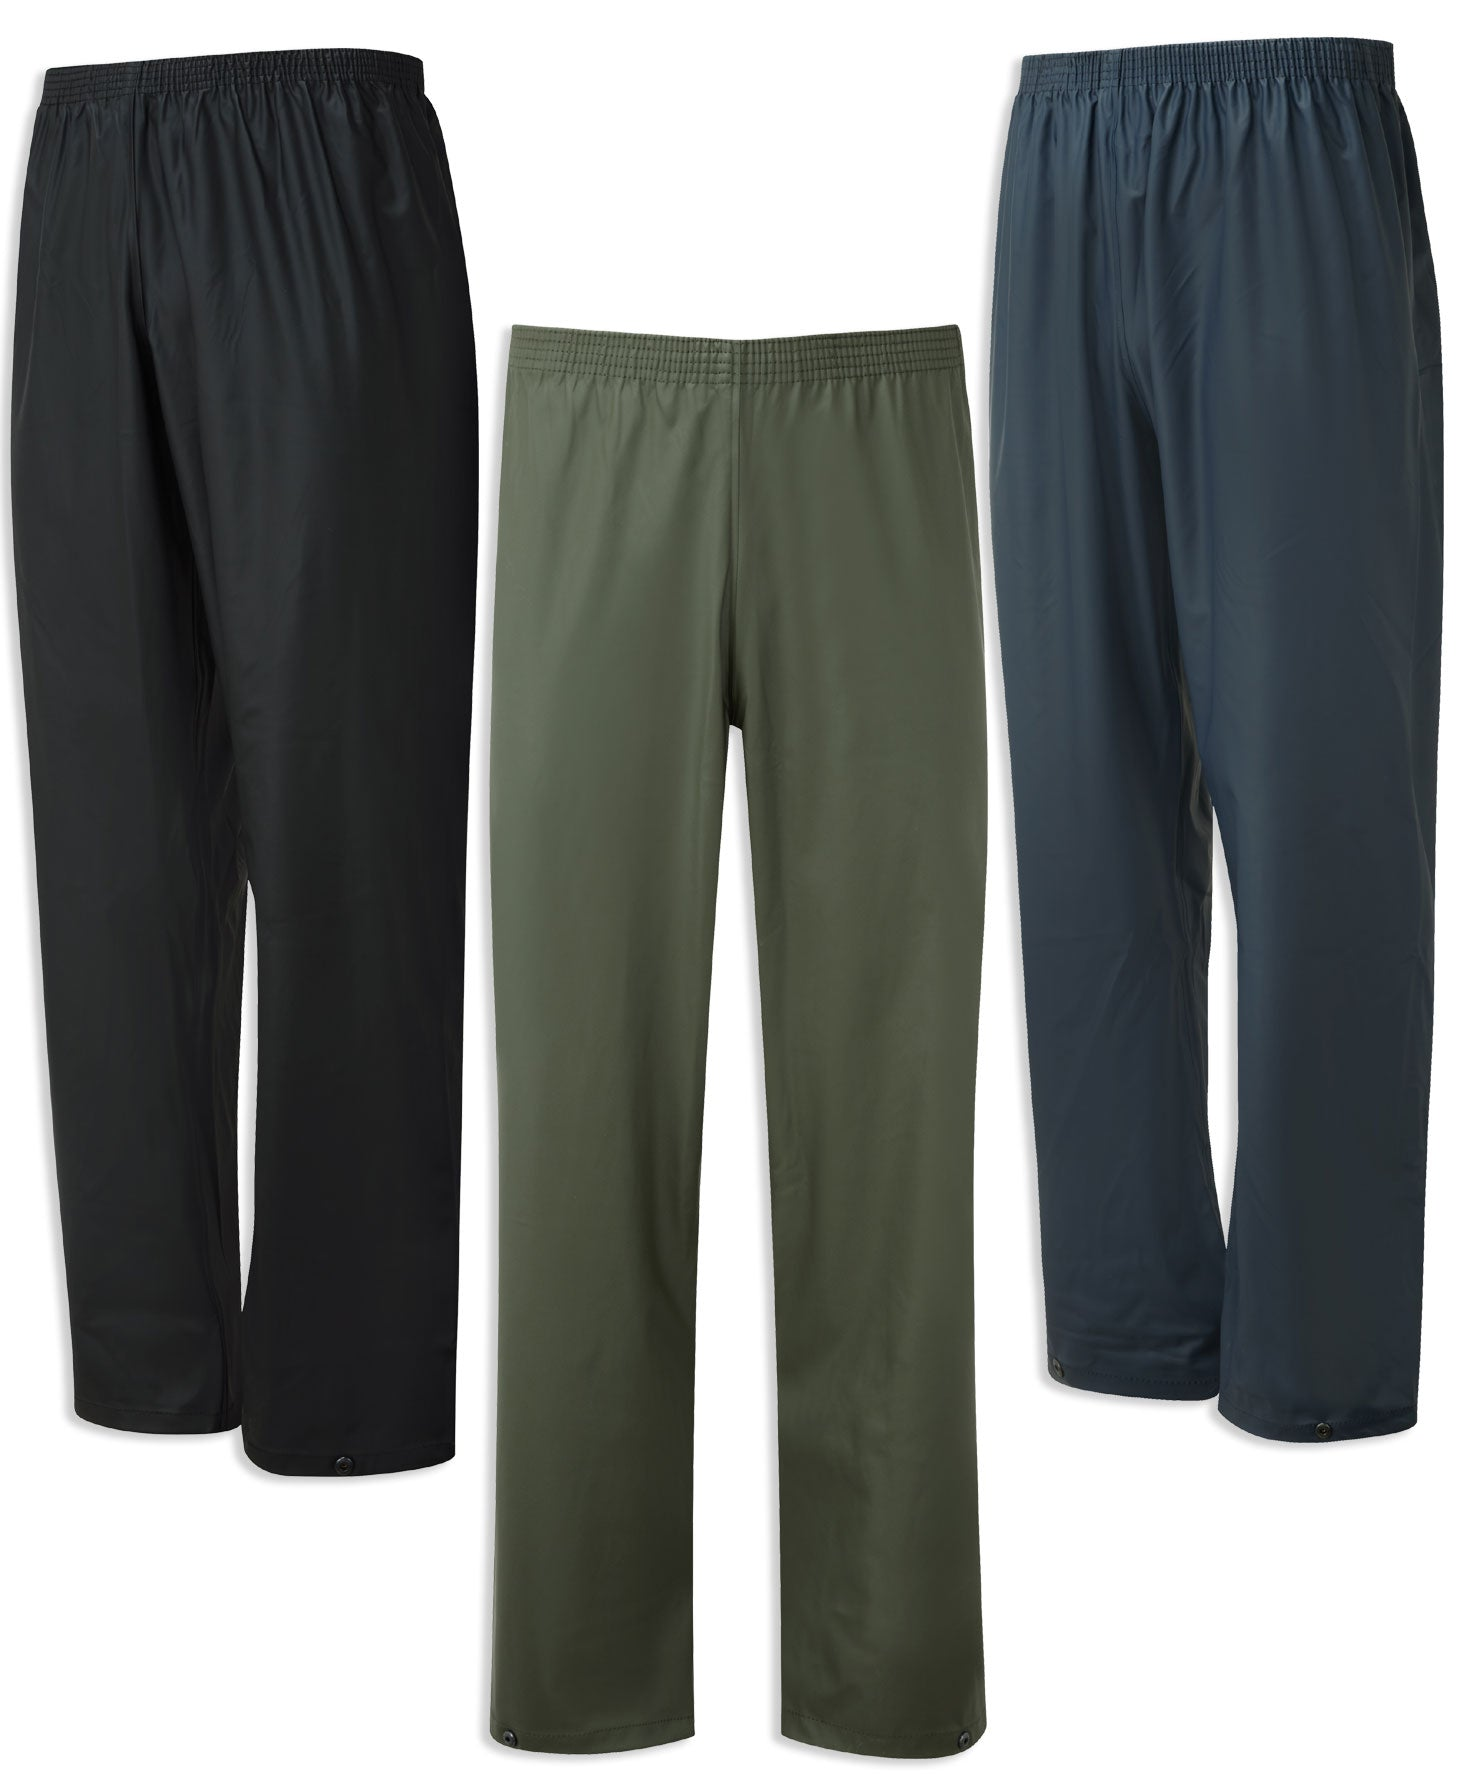 Waterproof Trousers in Breathable Fortex Air Flex